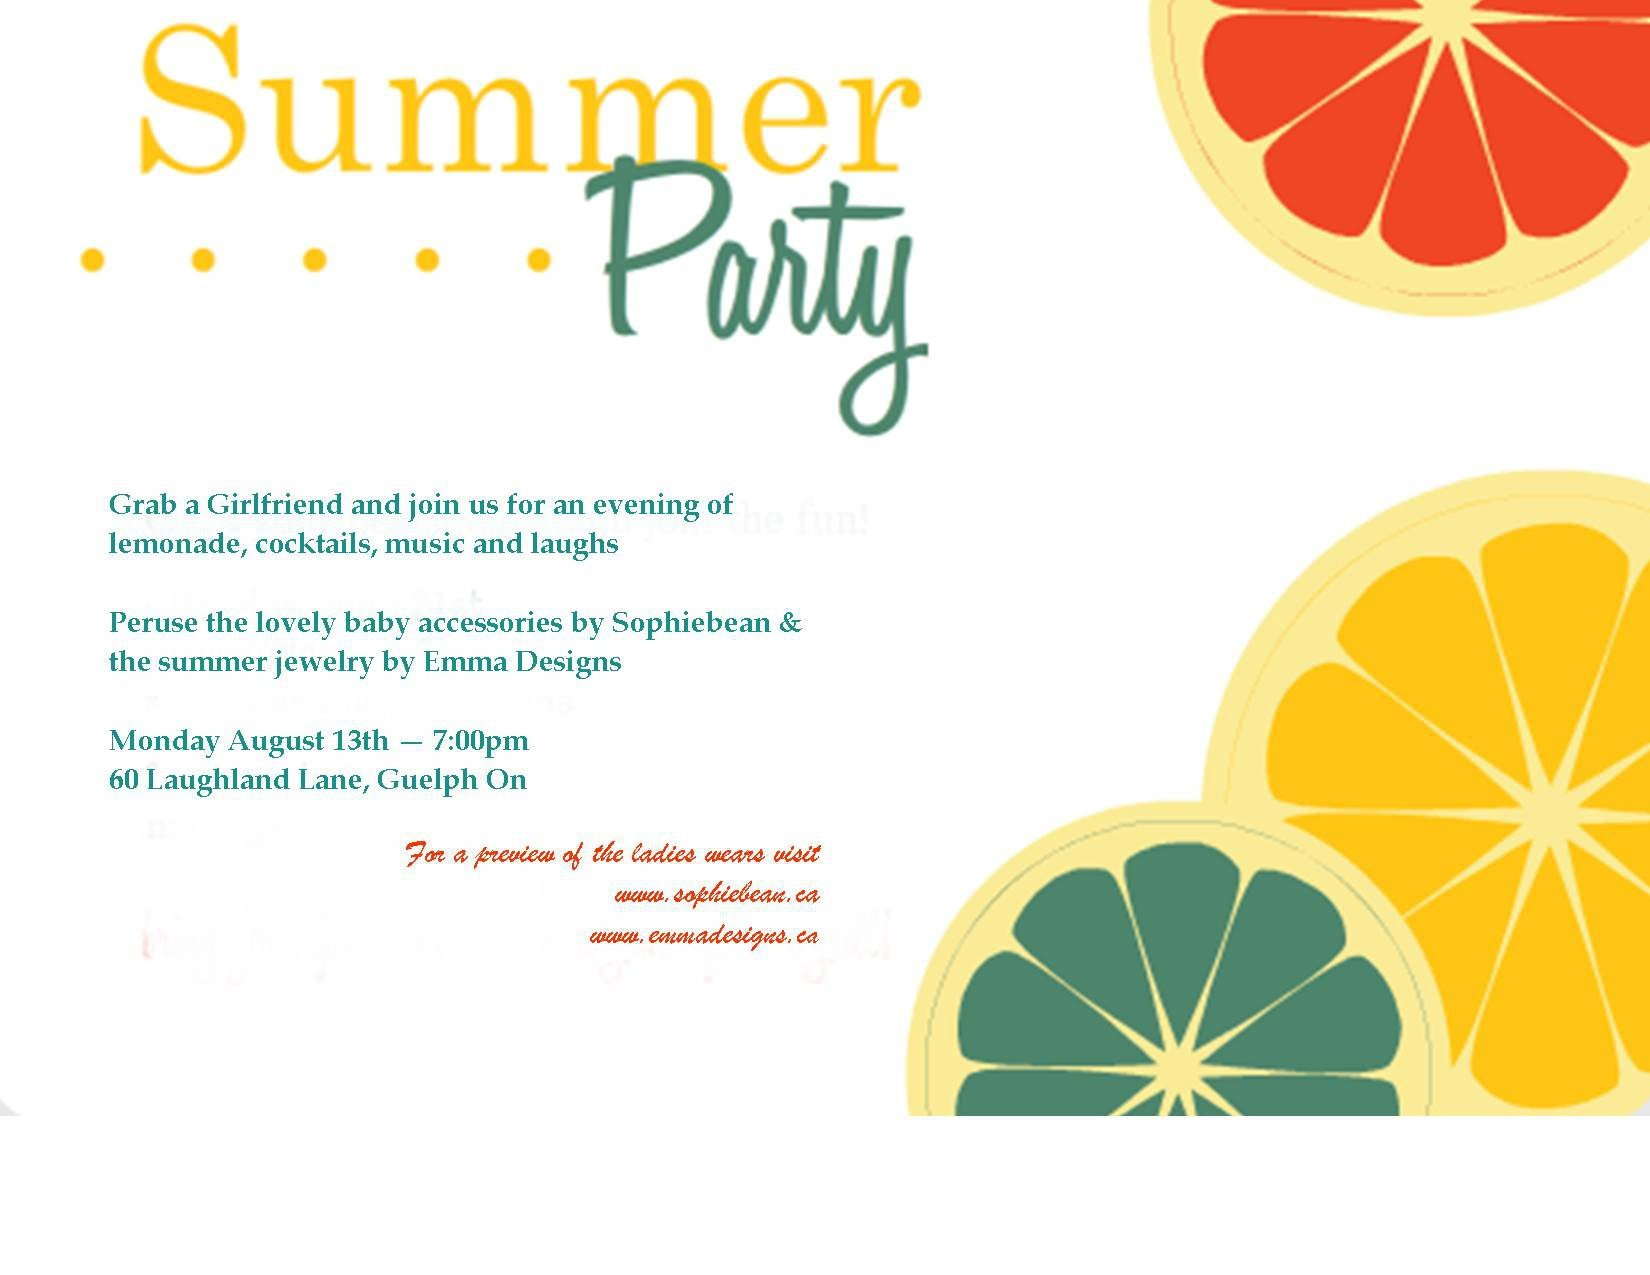 Summer Party Invites Templates Summer Party Invitation Template Summer Party Invitation